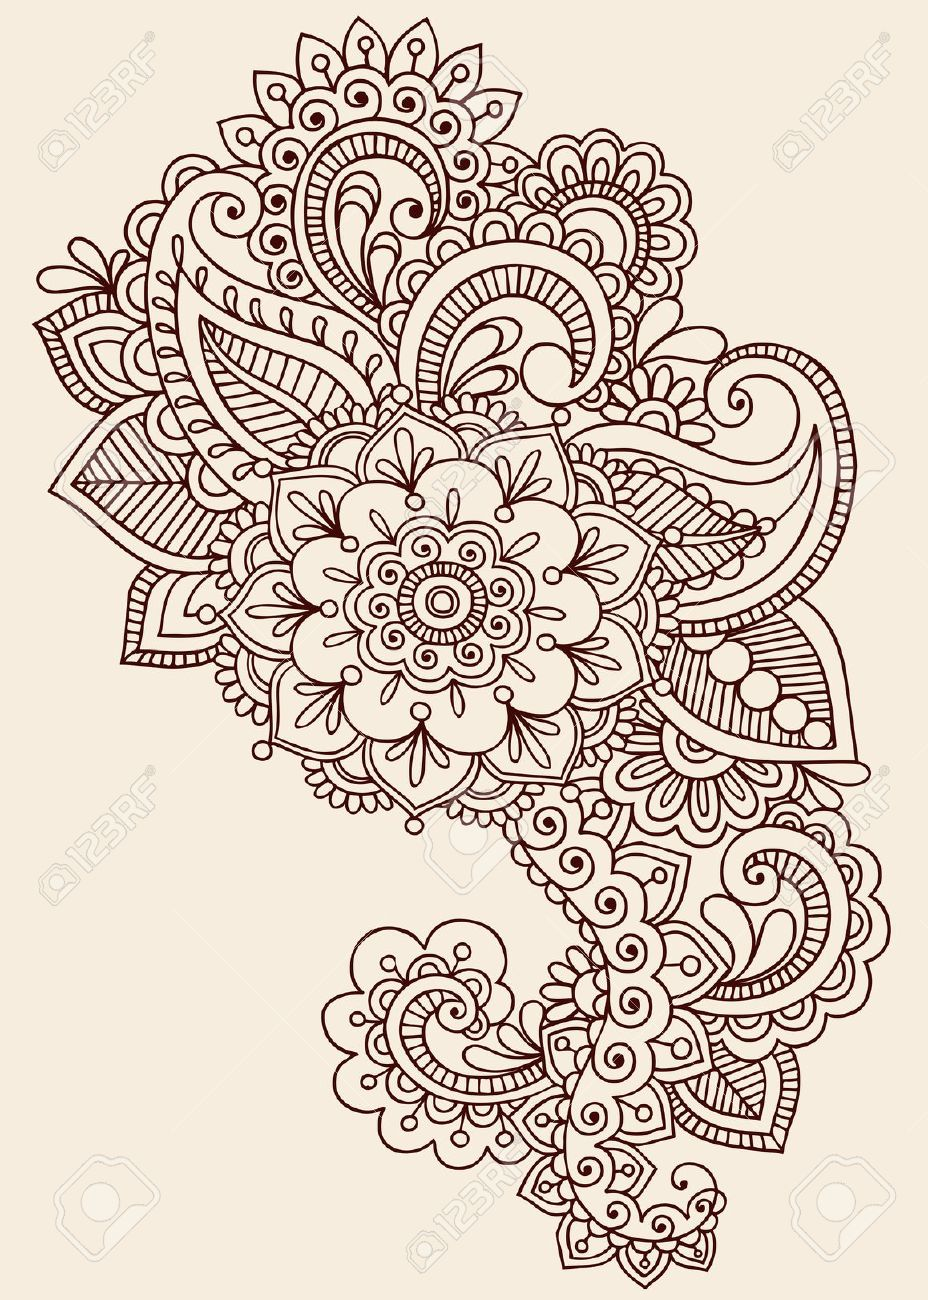 Drawn mehndi intricate Royalty Design Tattoo Abstract Abstract